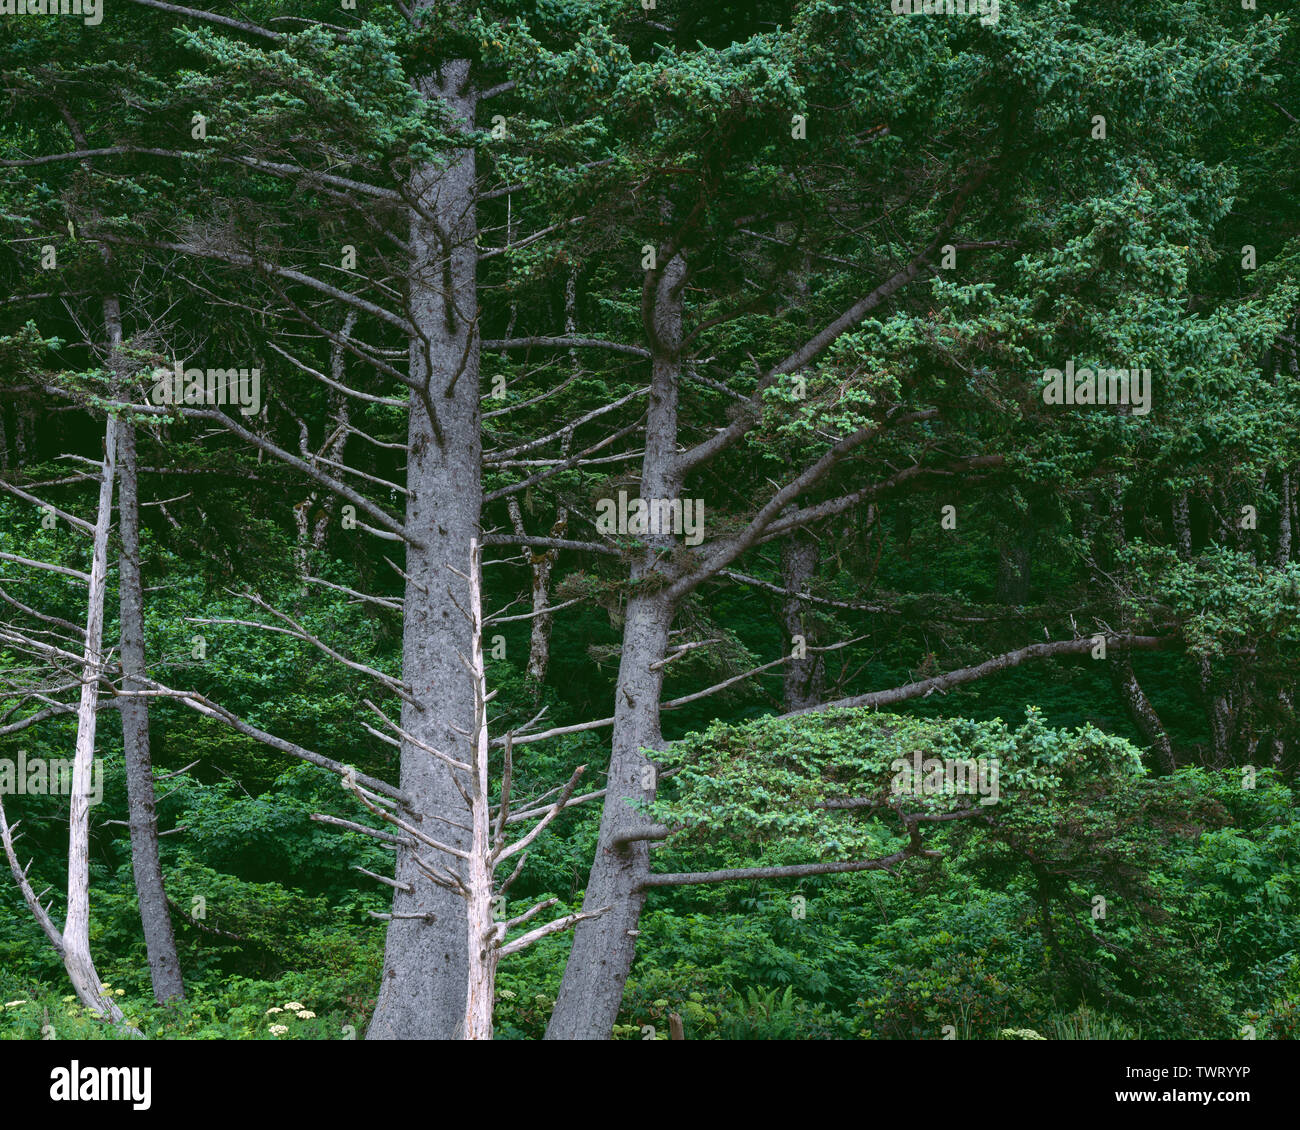 USA, Washington, Olympic National Park, Ocean facing forest of Sitka spruce growing above high tide line at Rialto Beach. Stock Photo